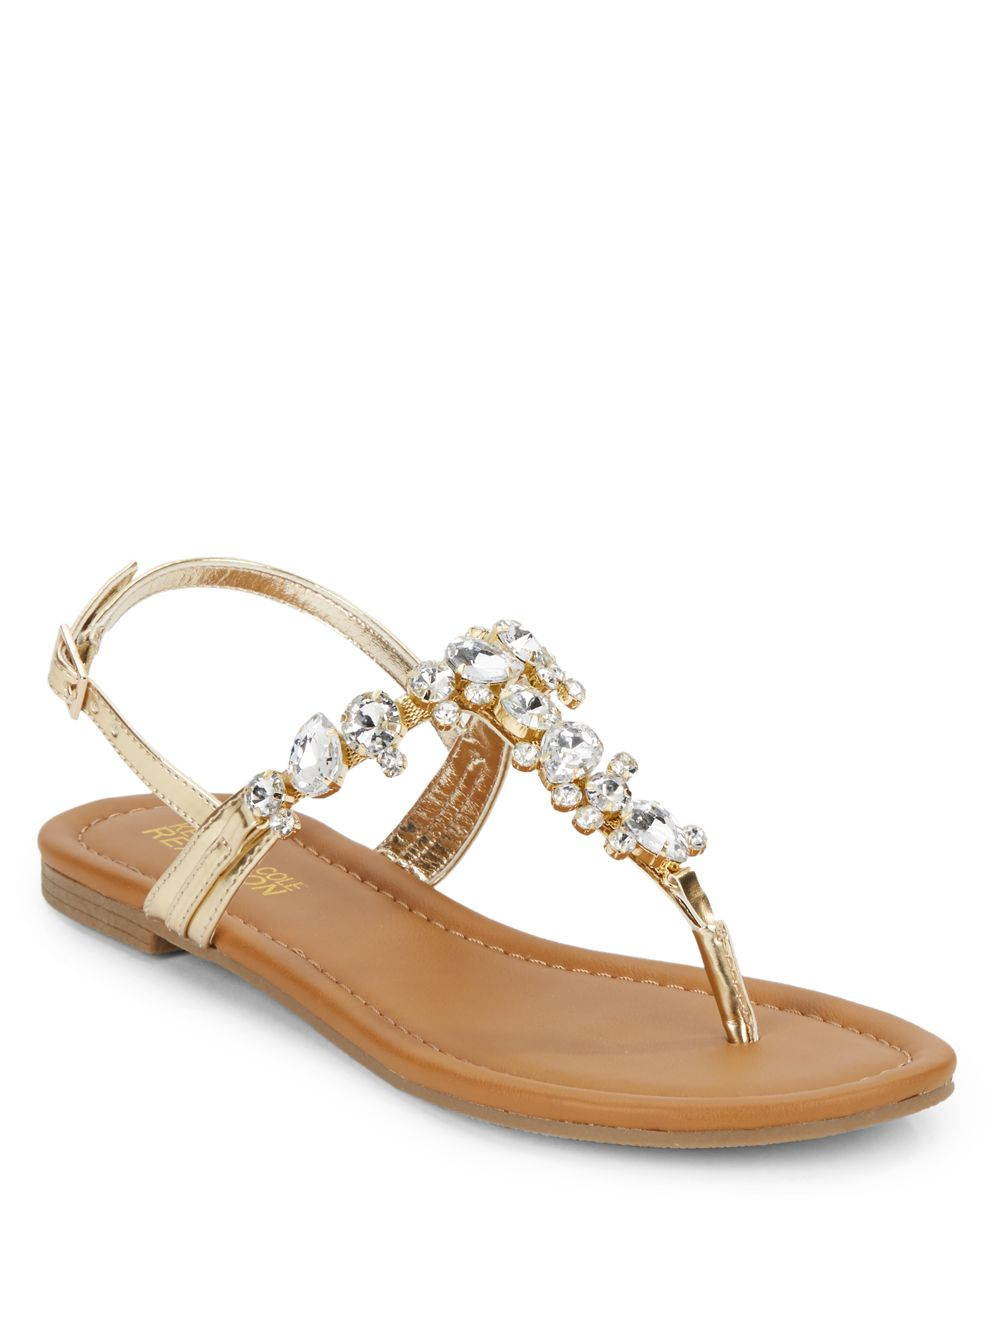 3db472bfbf4f8a Lyst - Kenneth Cole Reaction Drag Fire Jeweled Sandals in Metallic